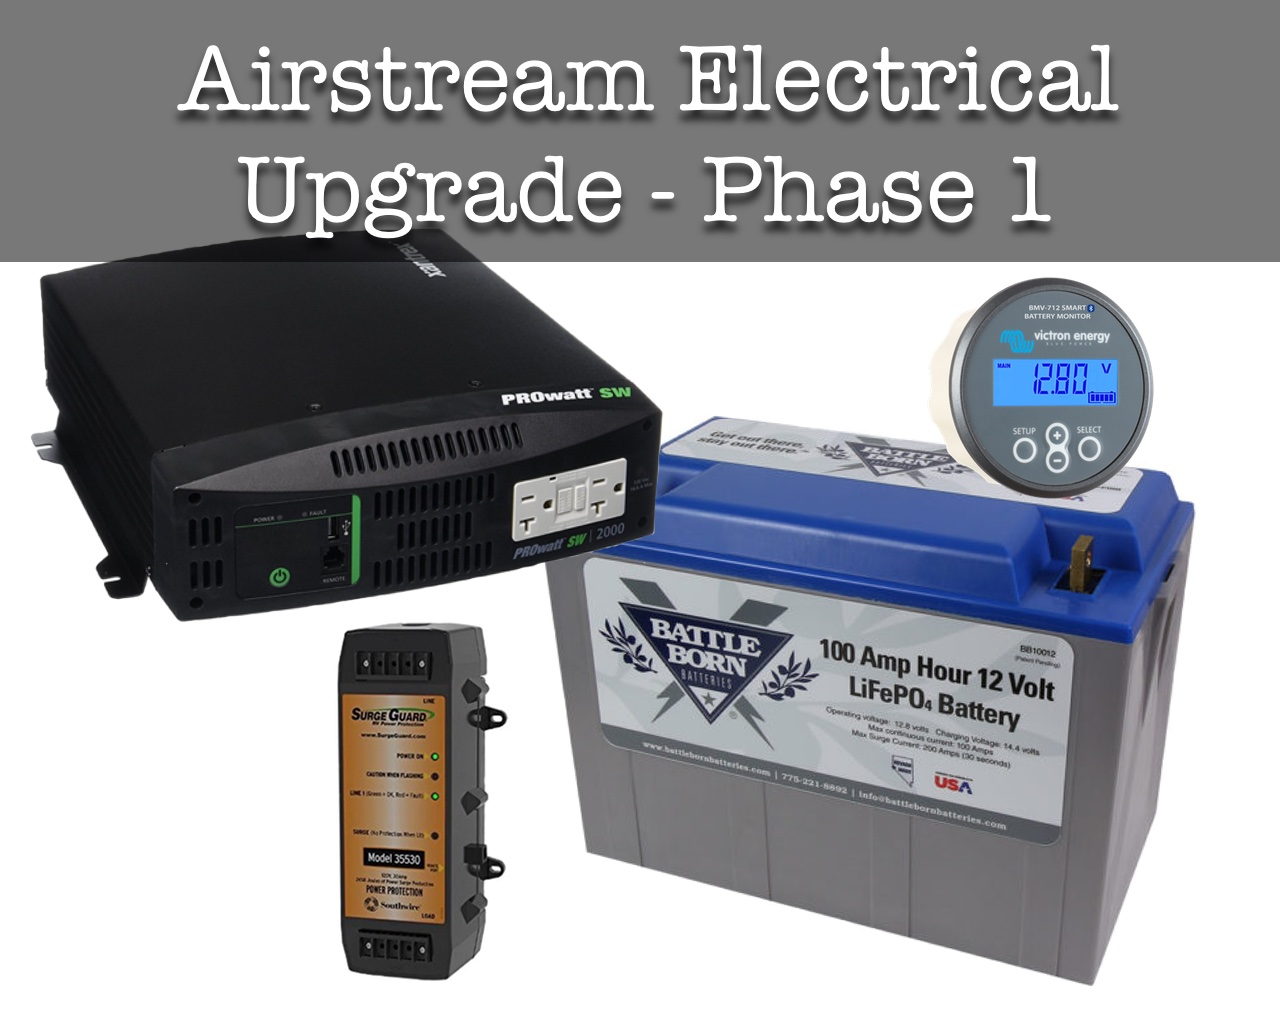 Airstream electrical system upgrade: Phase I – Wacky Wanderers